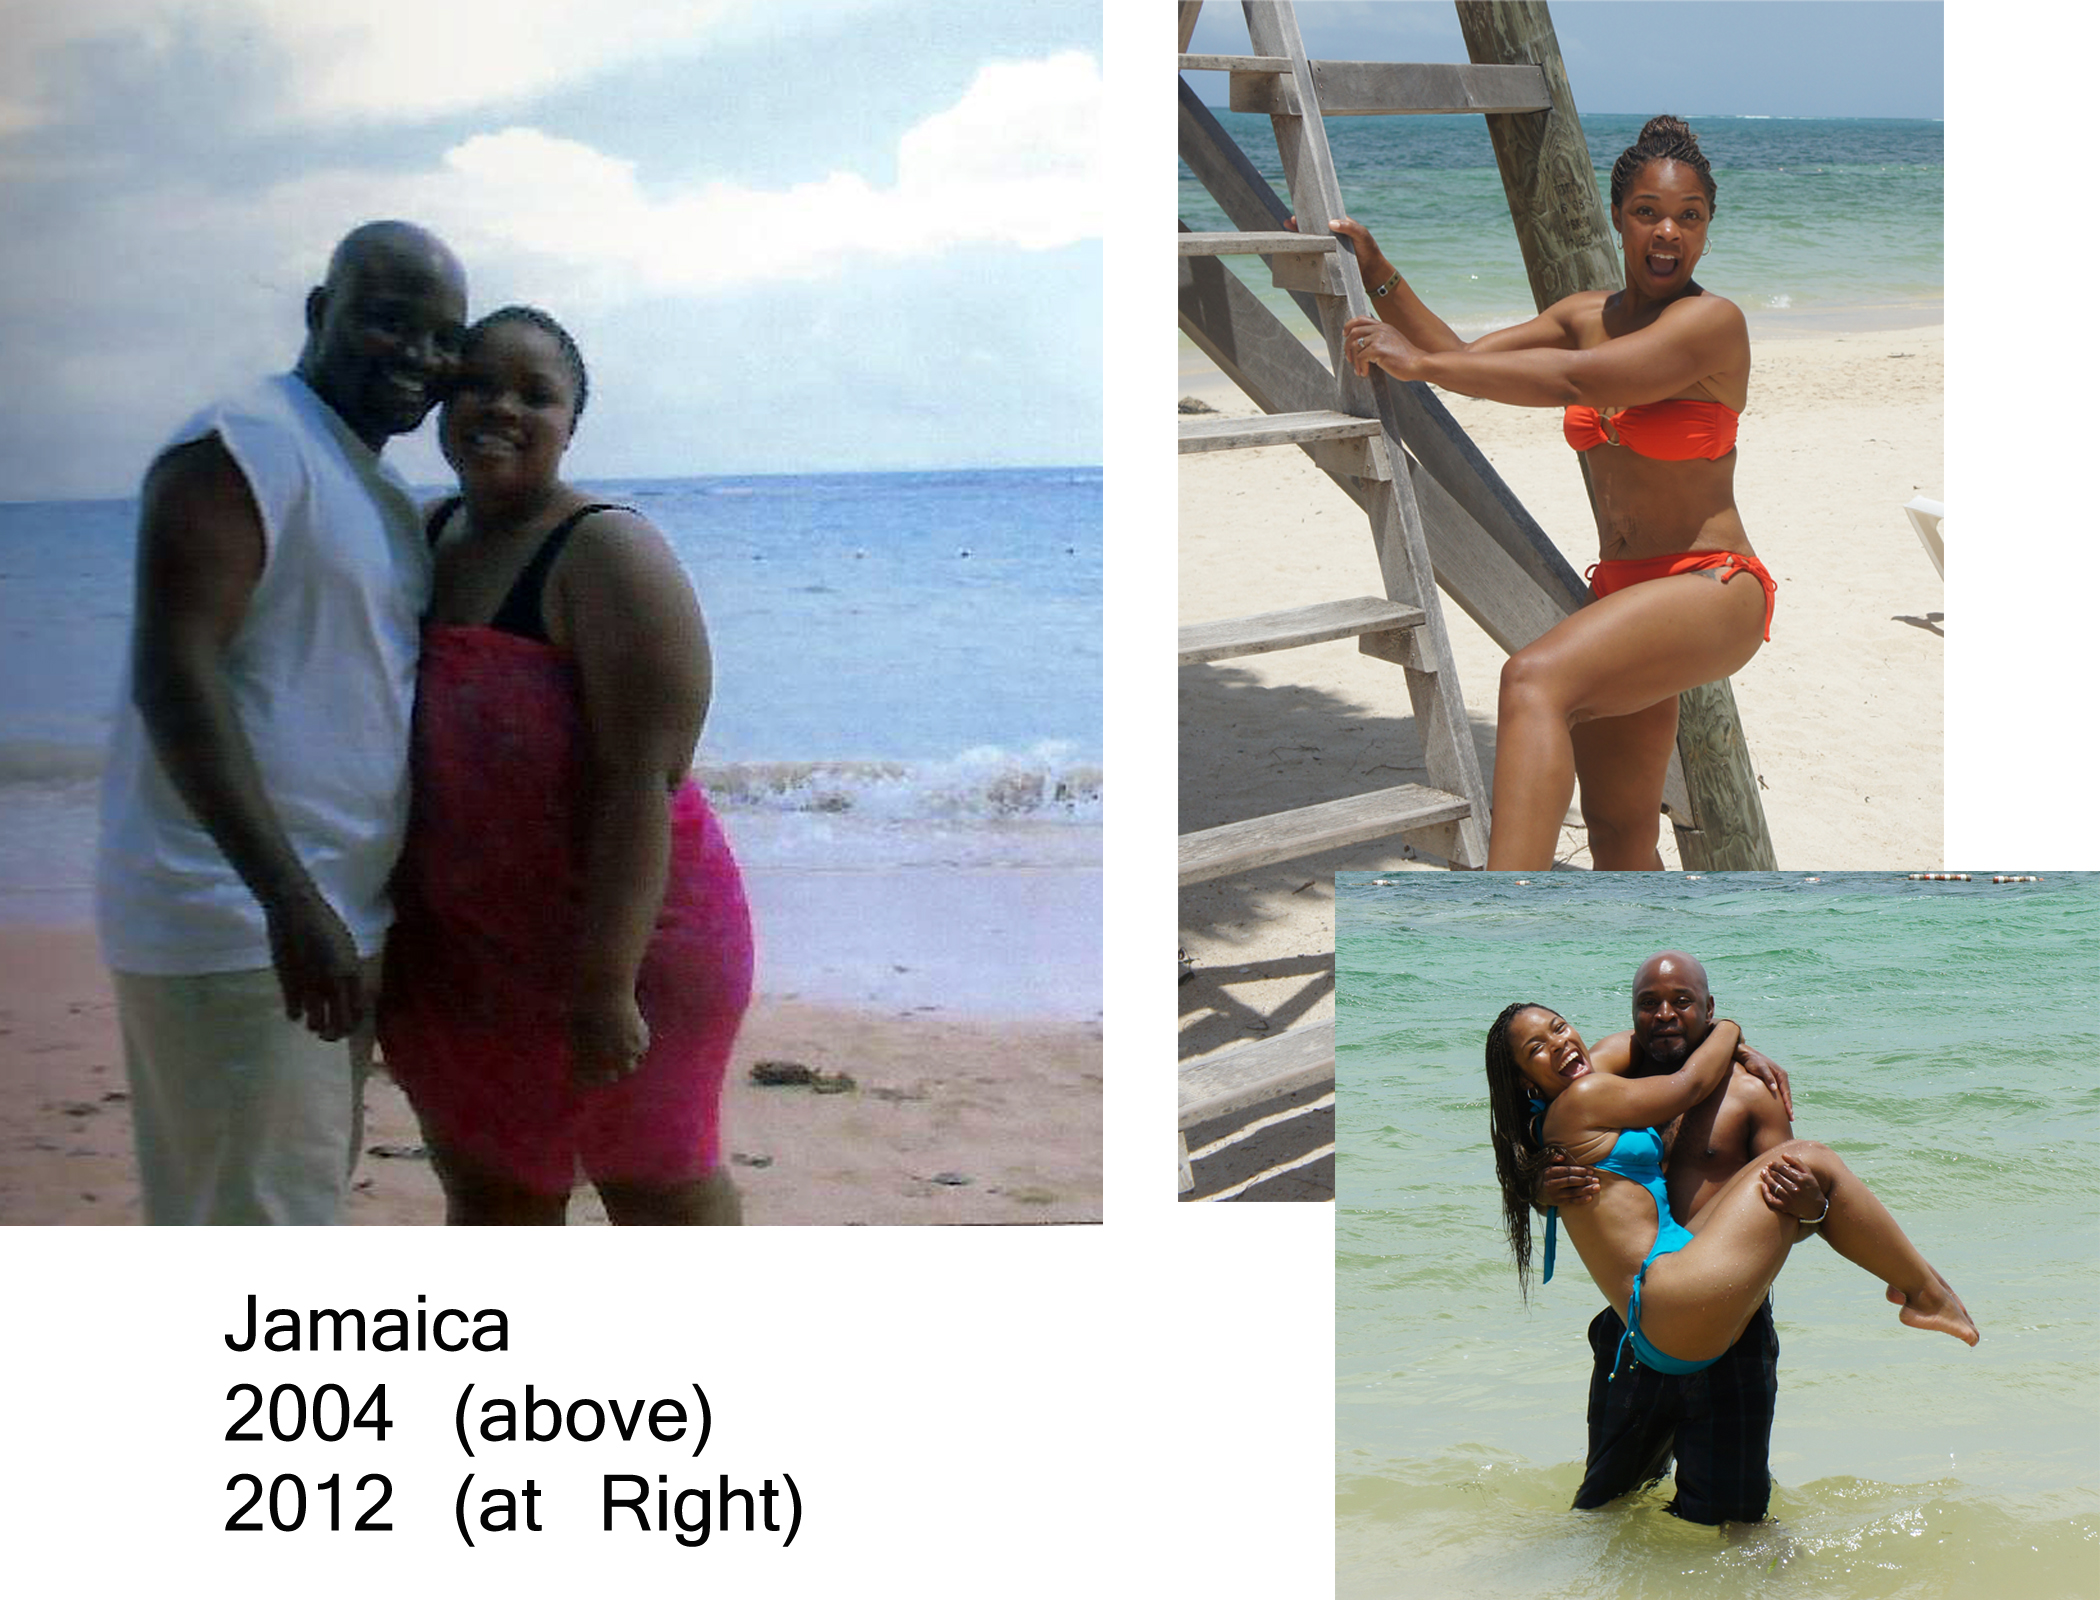 Jamaica before and after